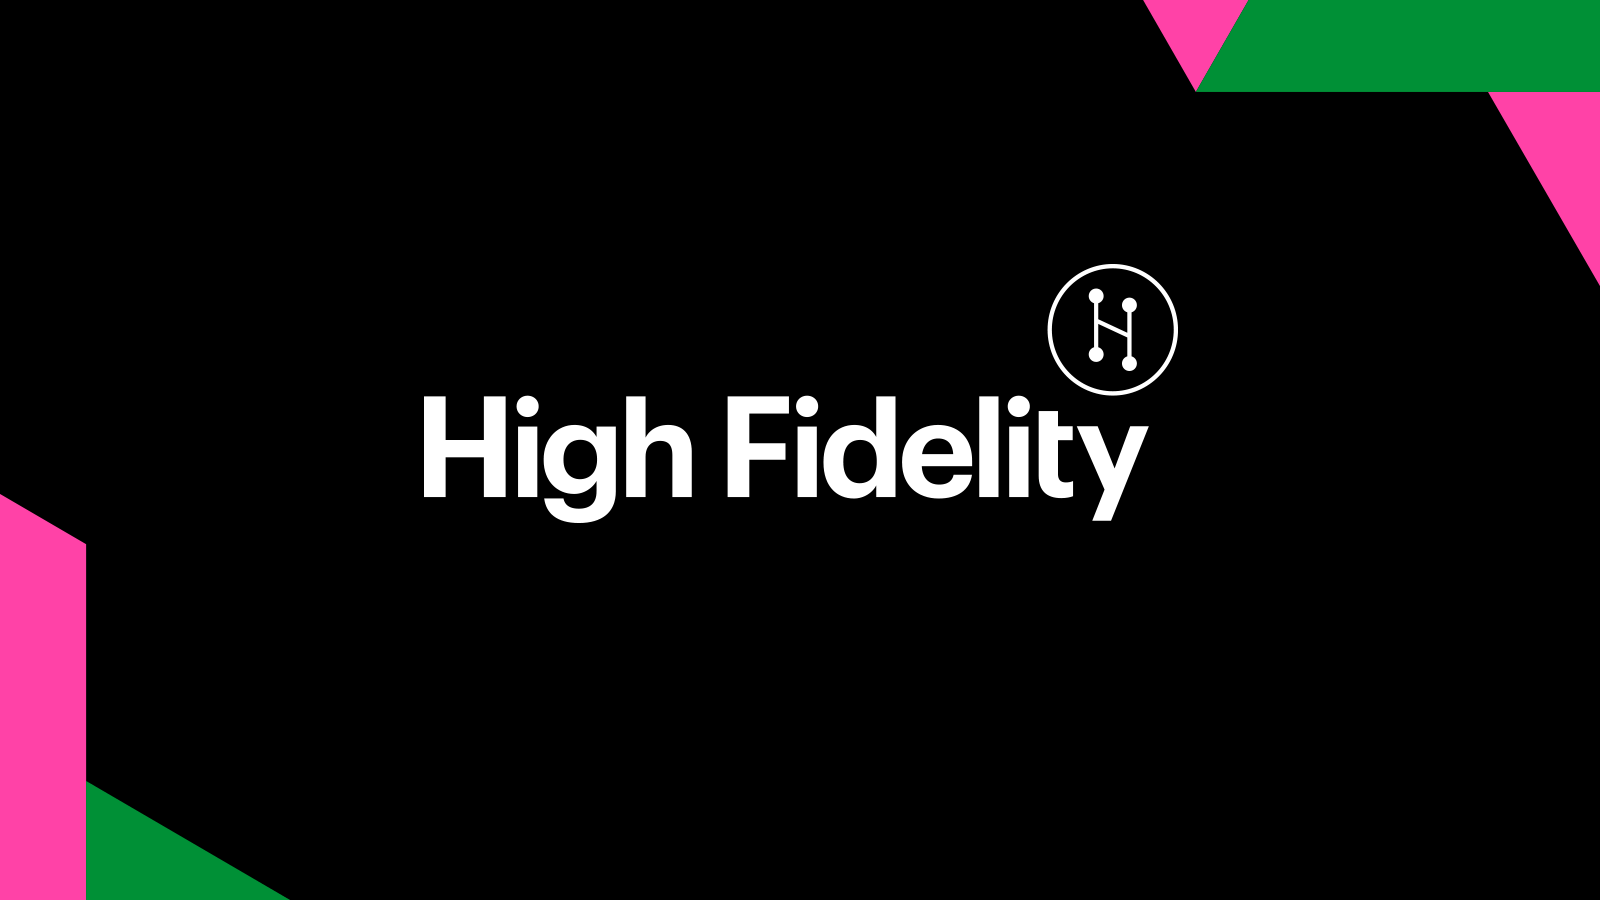 Details: Authentication in High Fidelity